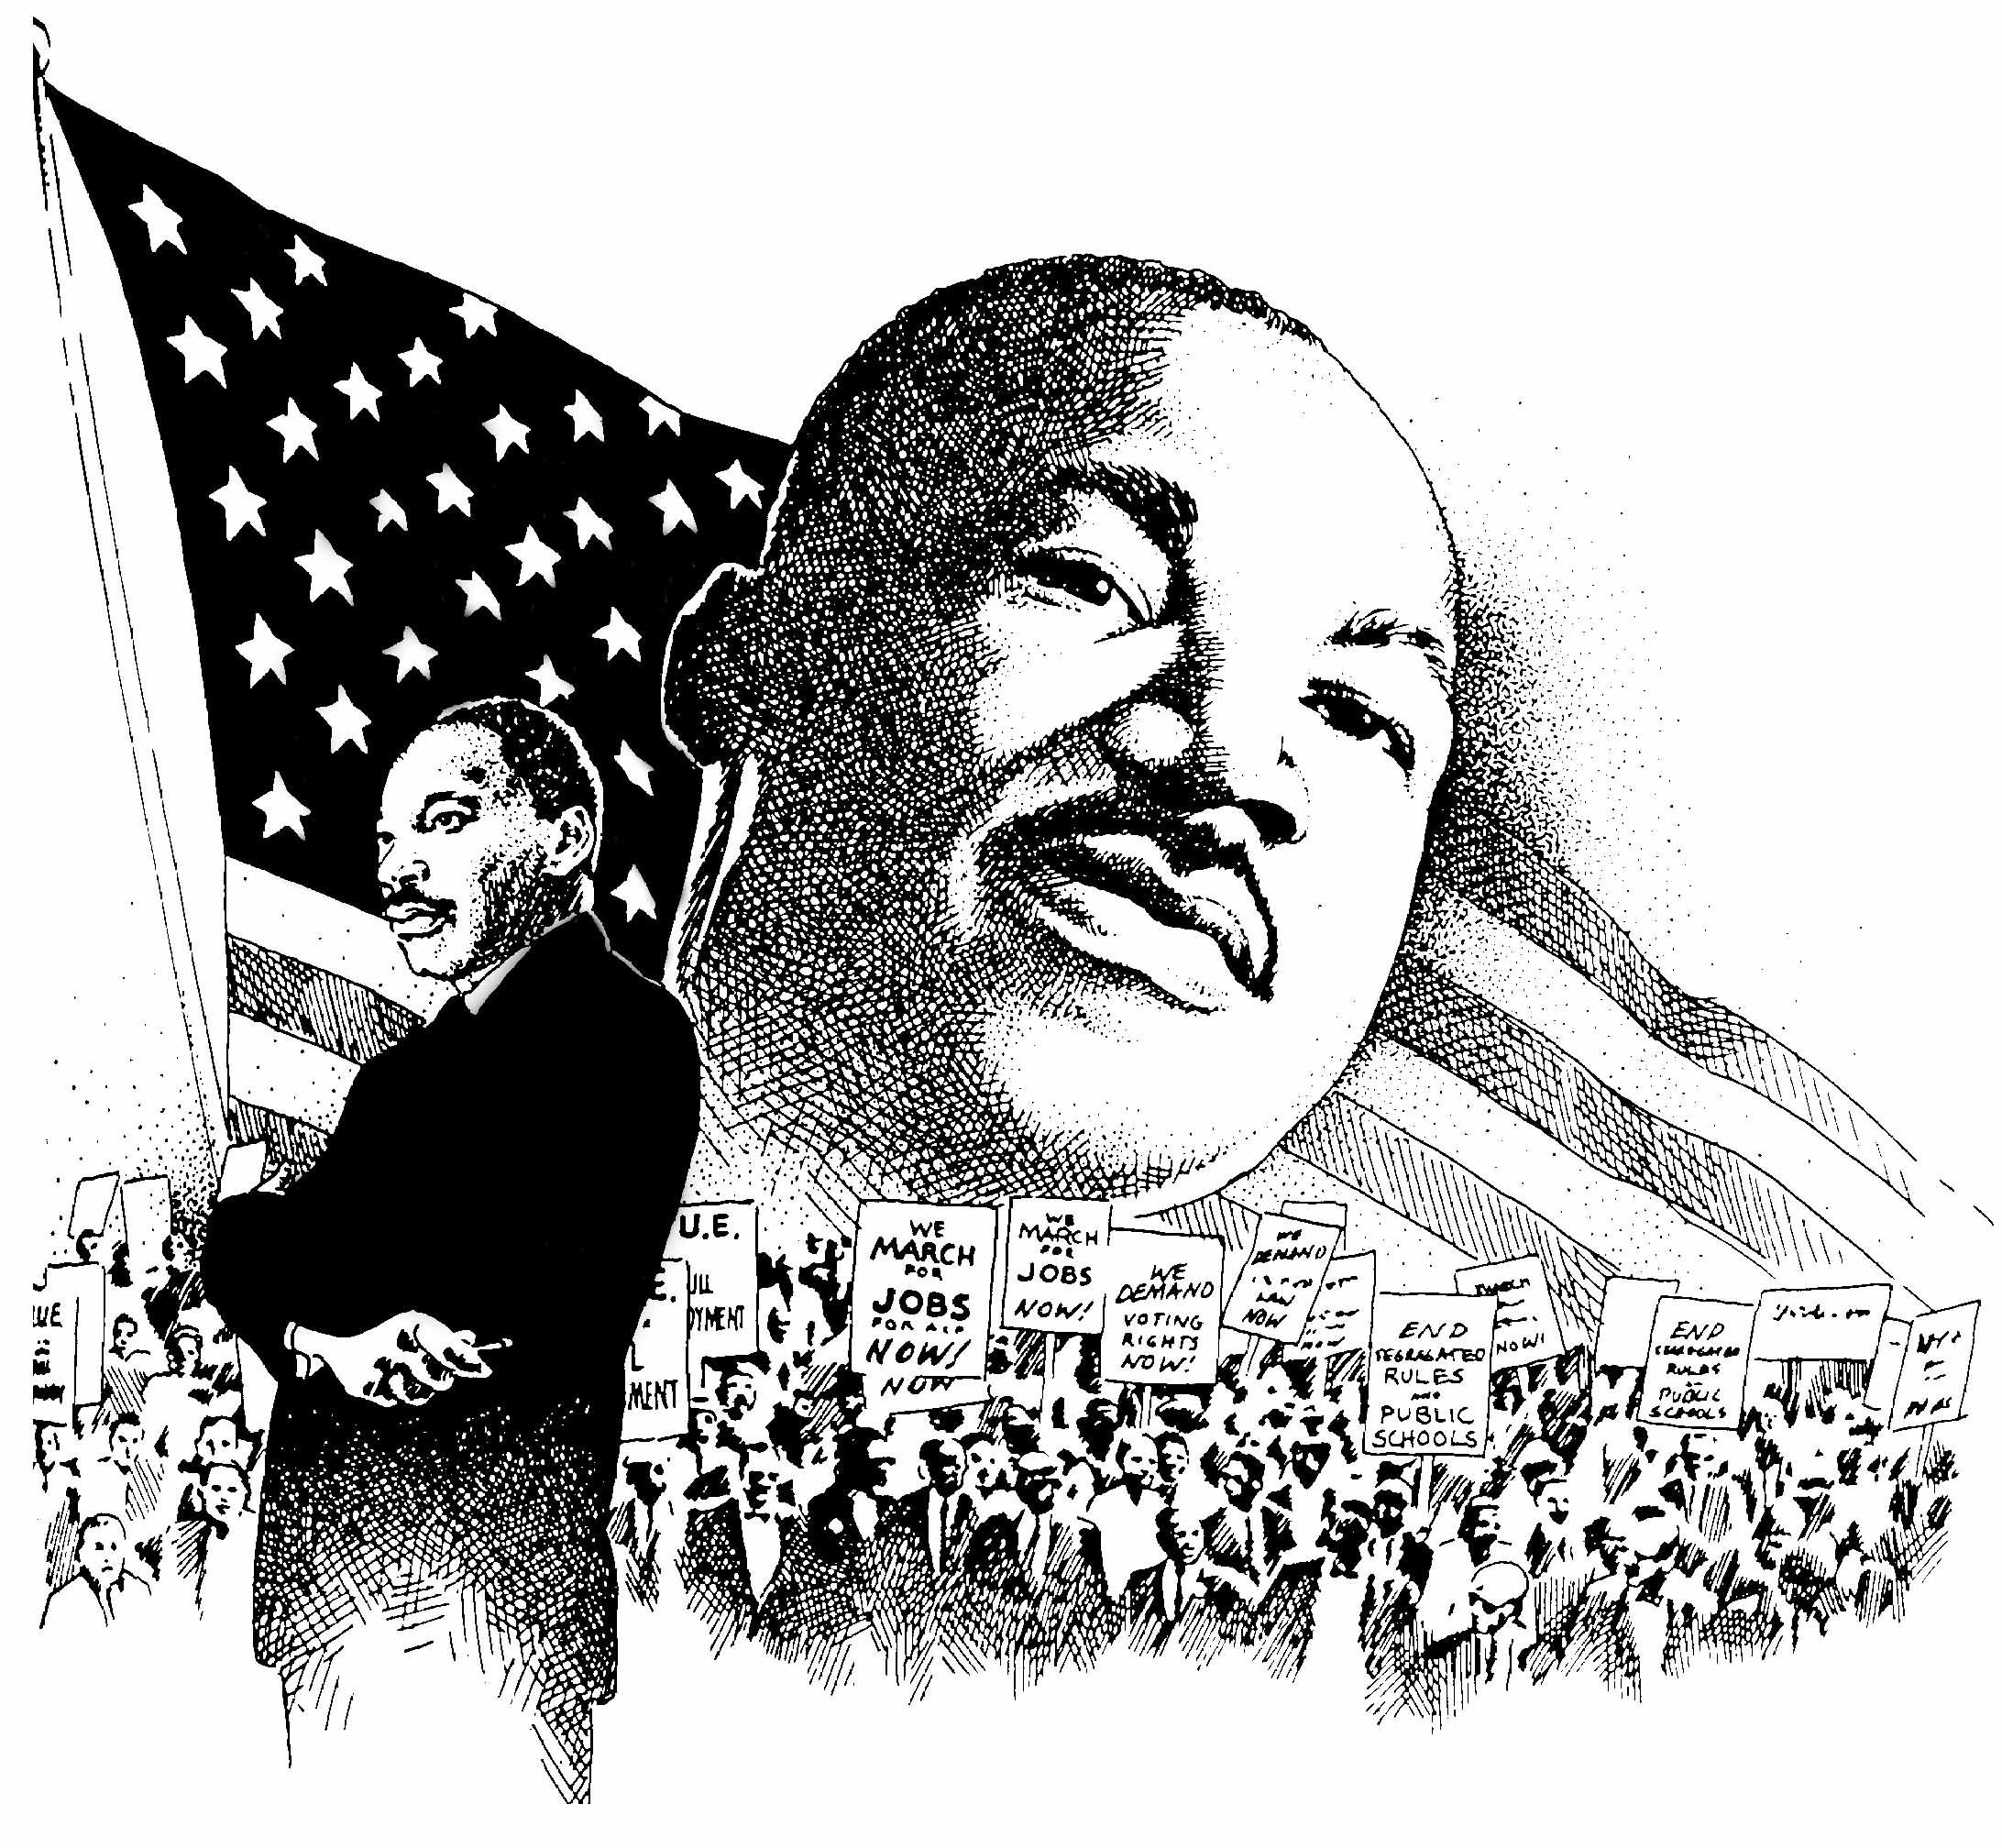 expository essay that critiques martin luther king s i have a expository essay that critiques martin luther king s i have a dream speech